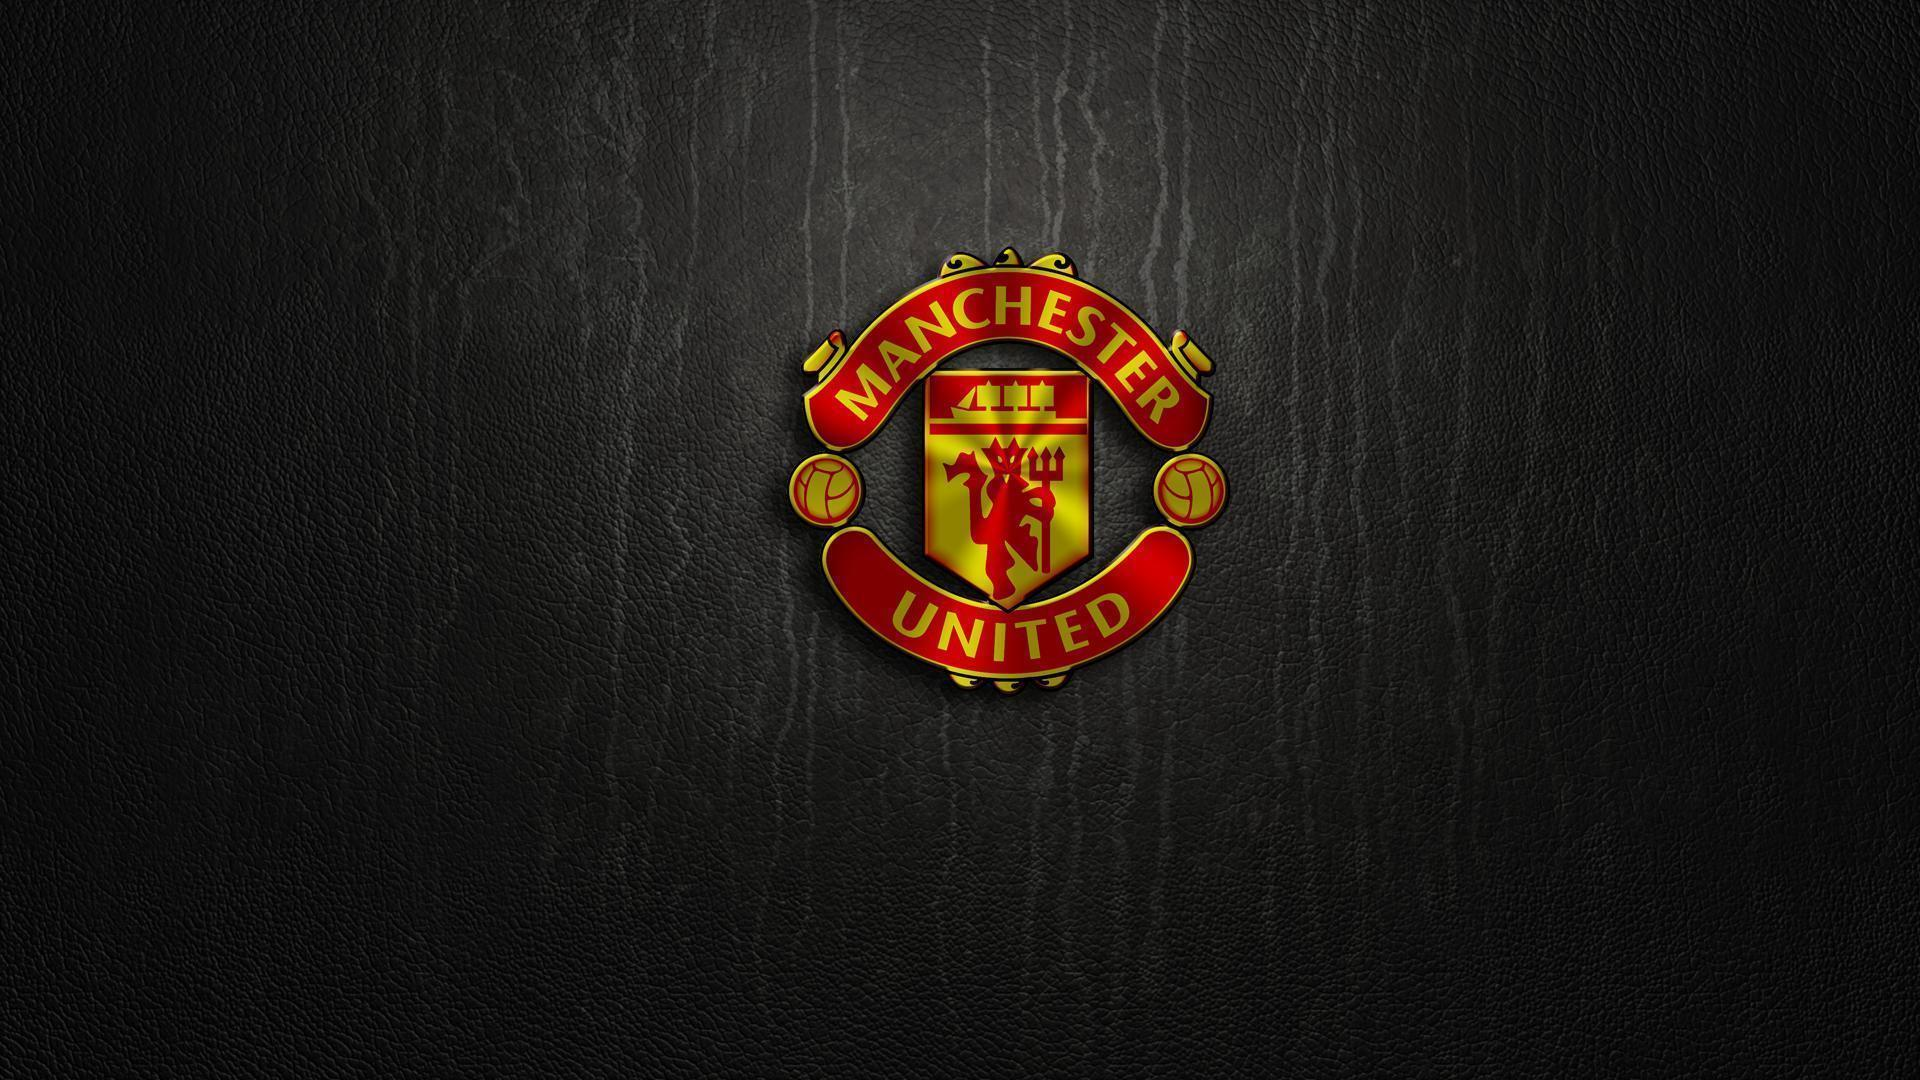 manchester united wallpapers hdimage - photo #5